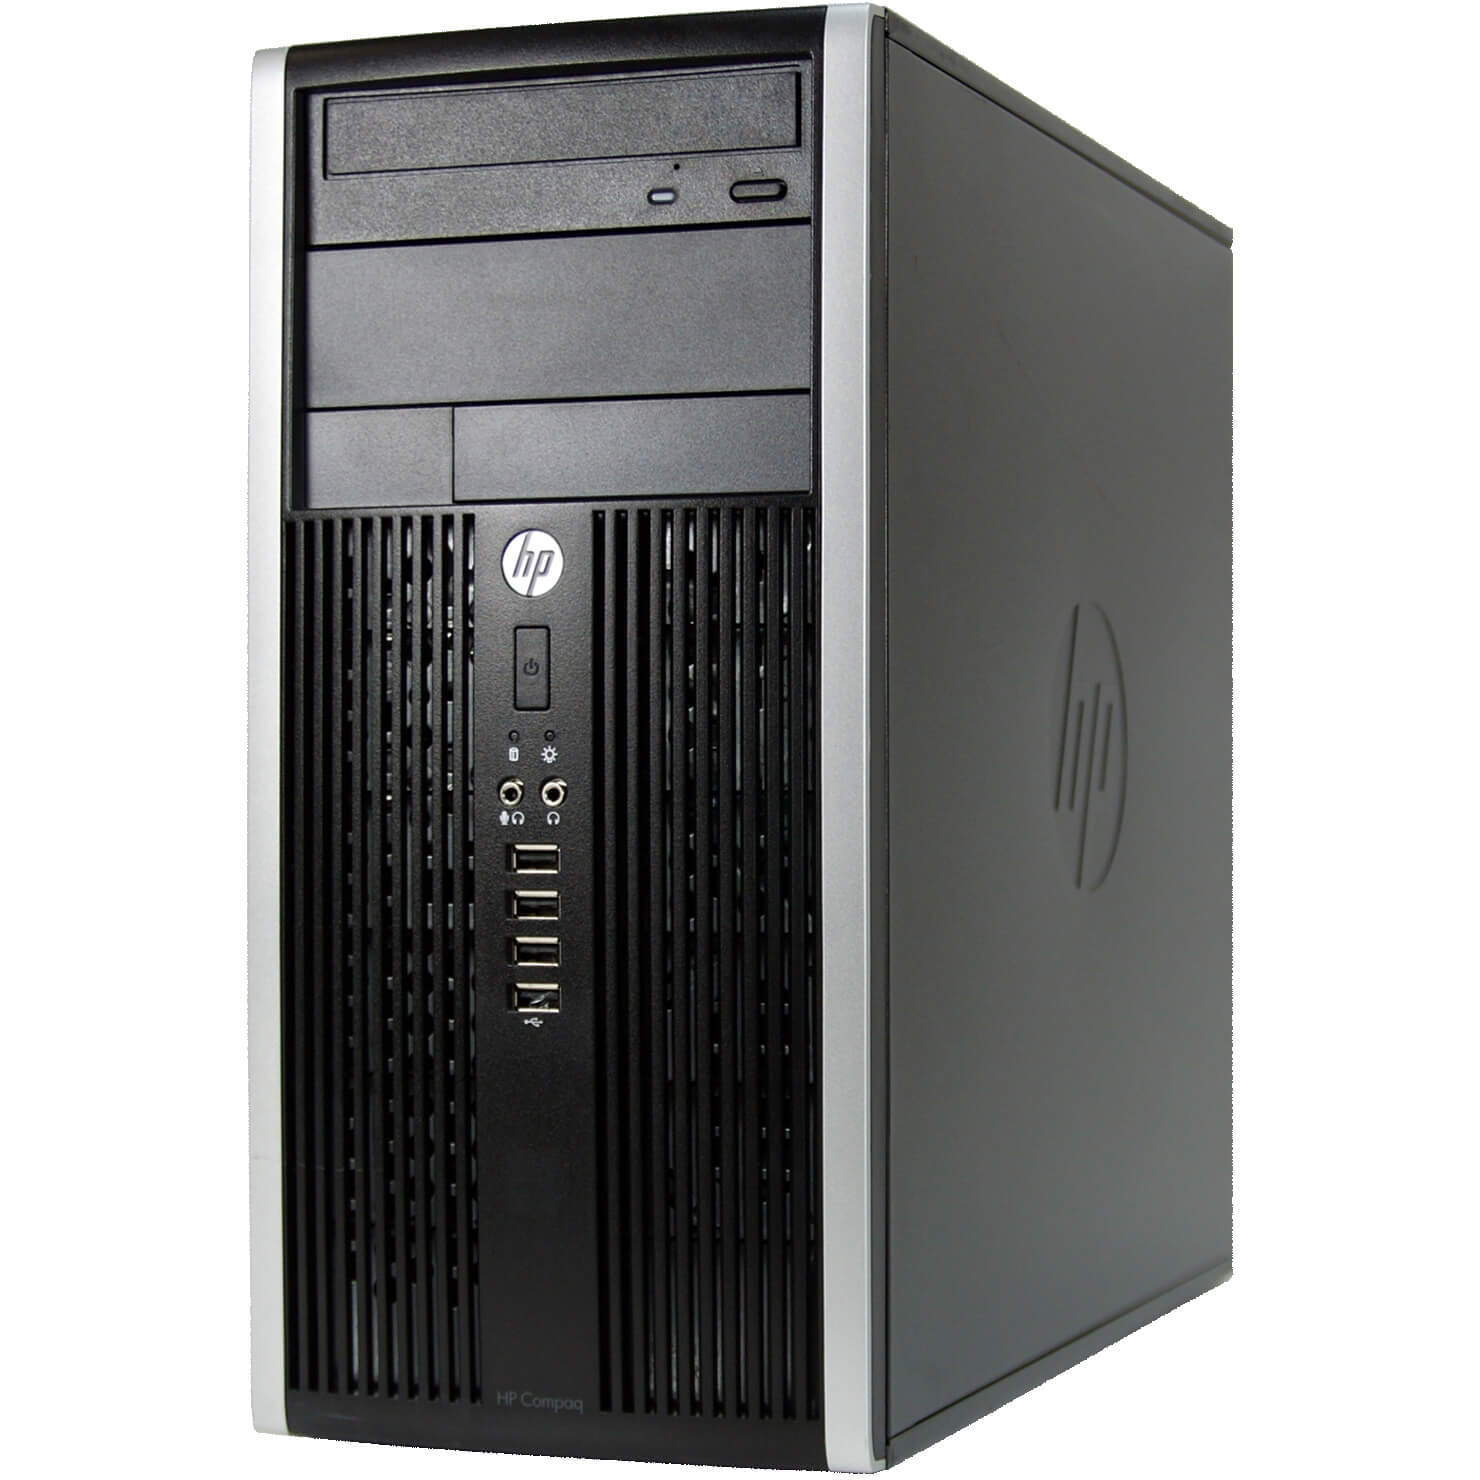 HP COMPAQ PRO 6005 TOWER AMD ATHLON II X2 B28 3.4 / 4096 MB DDR3 / 120 GB SSD NOWY + 500 GB / DVD-RW / WINDOWS 10 PRO